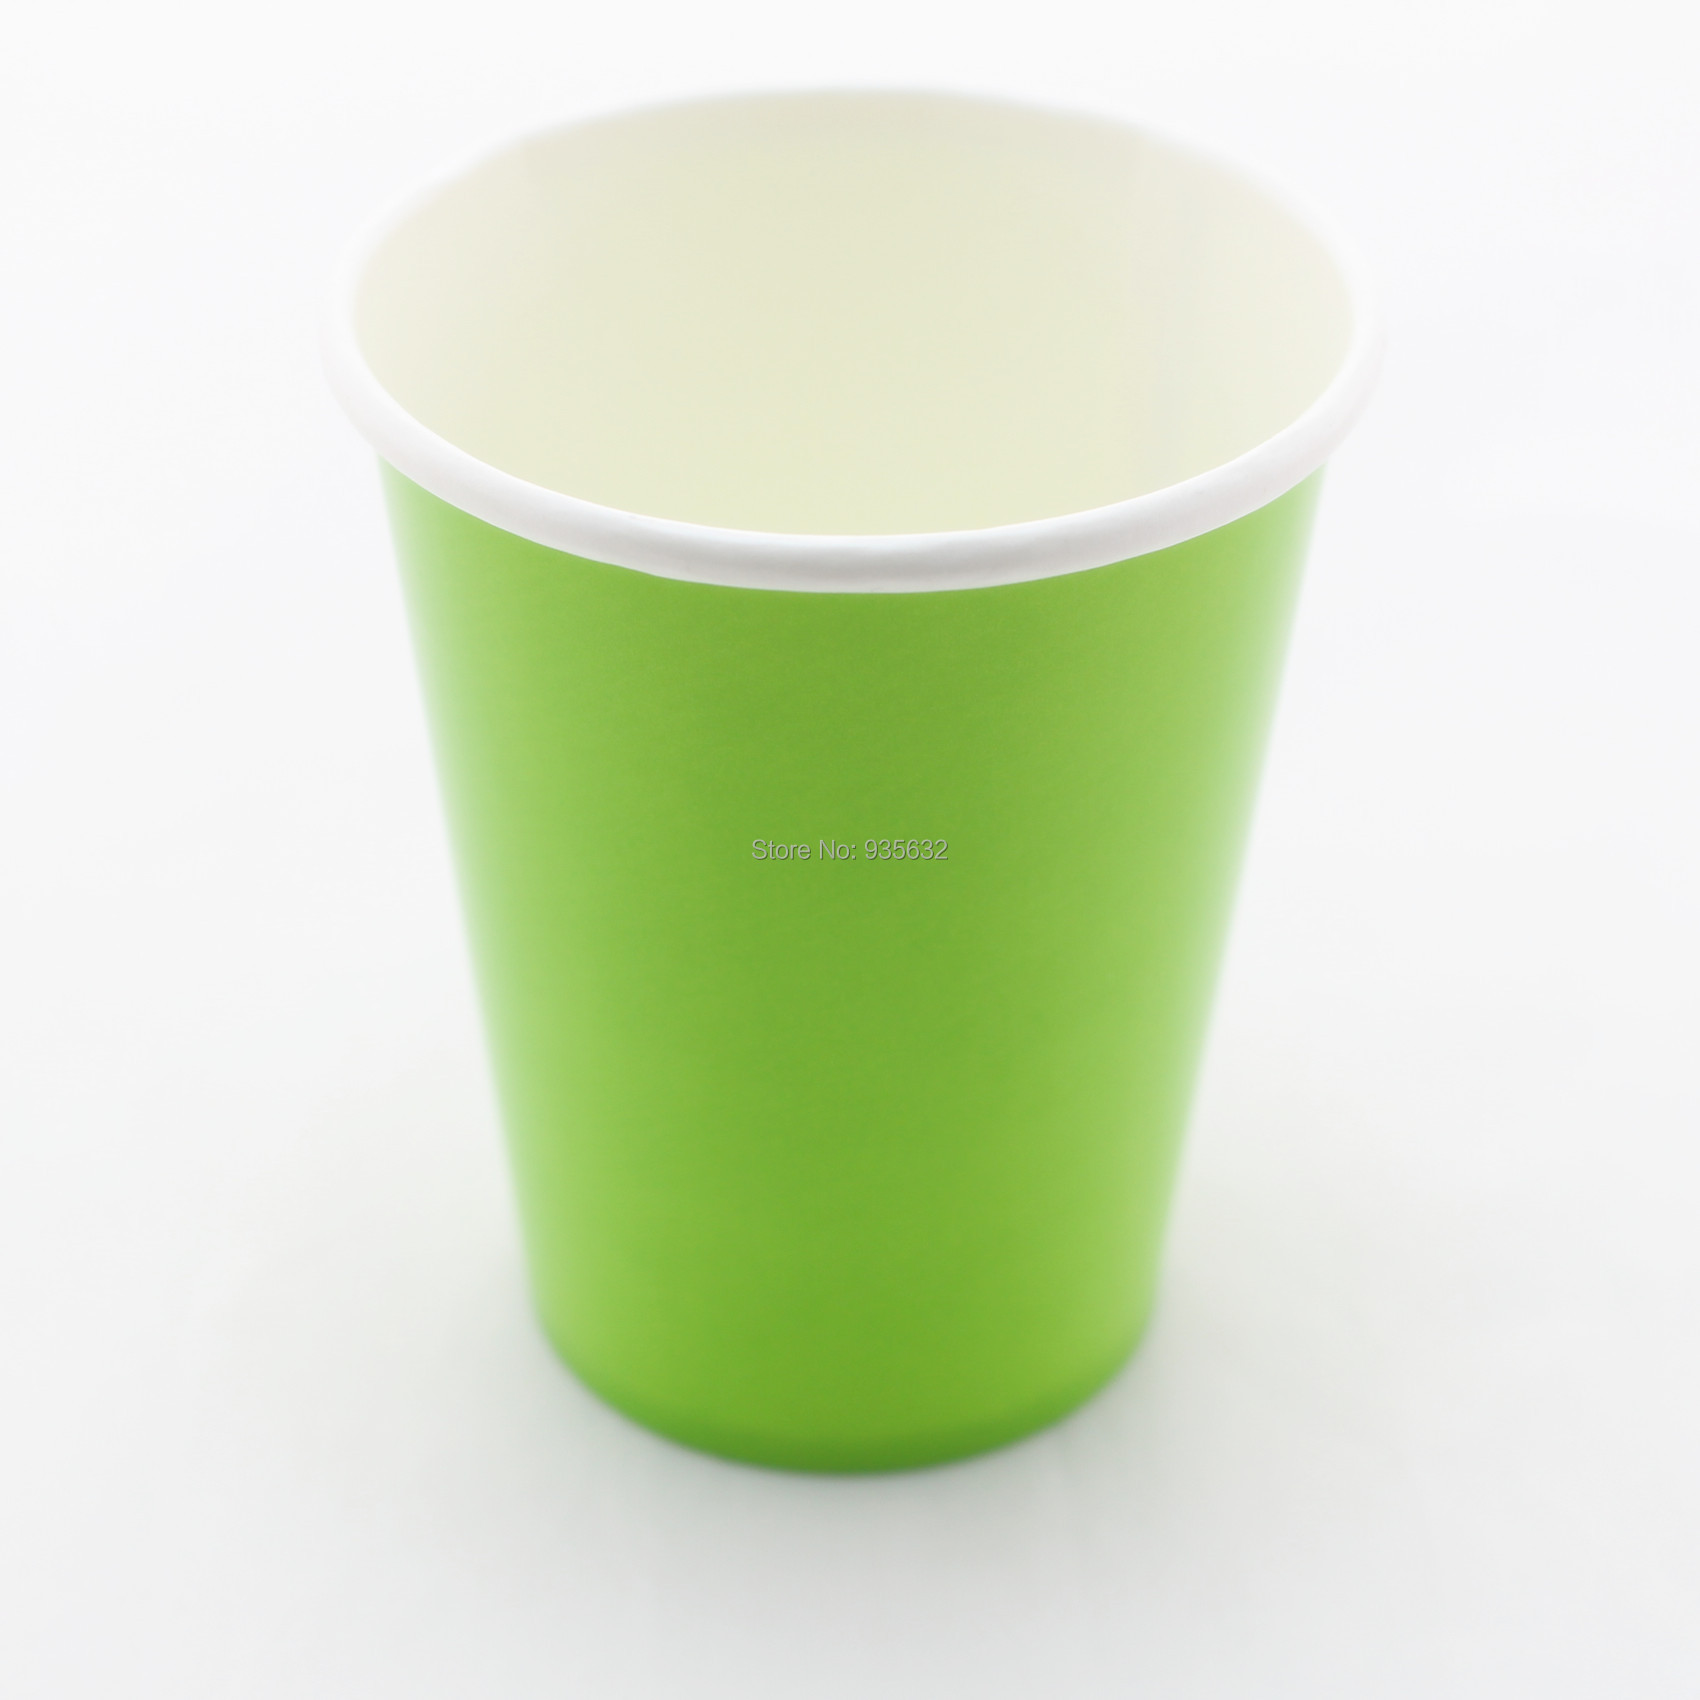 paper cups for sale Showing 50 results for the query small coffee cups related queries: metallic k coffee cups, berghoff coffee cups, espresso coffee cup set, white coffee cups these white paper cone coffee filters are designed for use with the melitta® 10-cup pour over coffee maker.